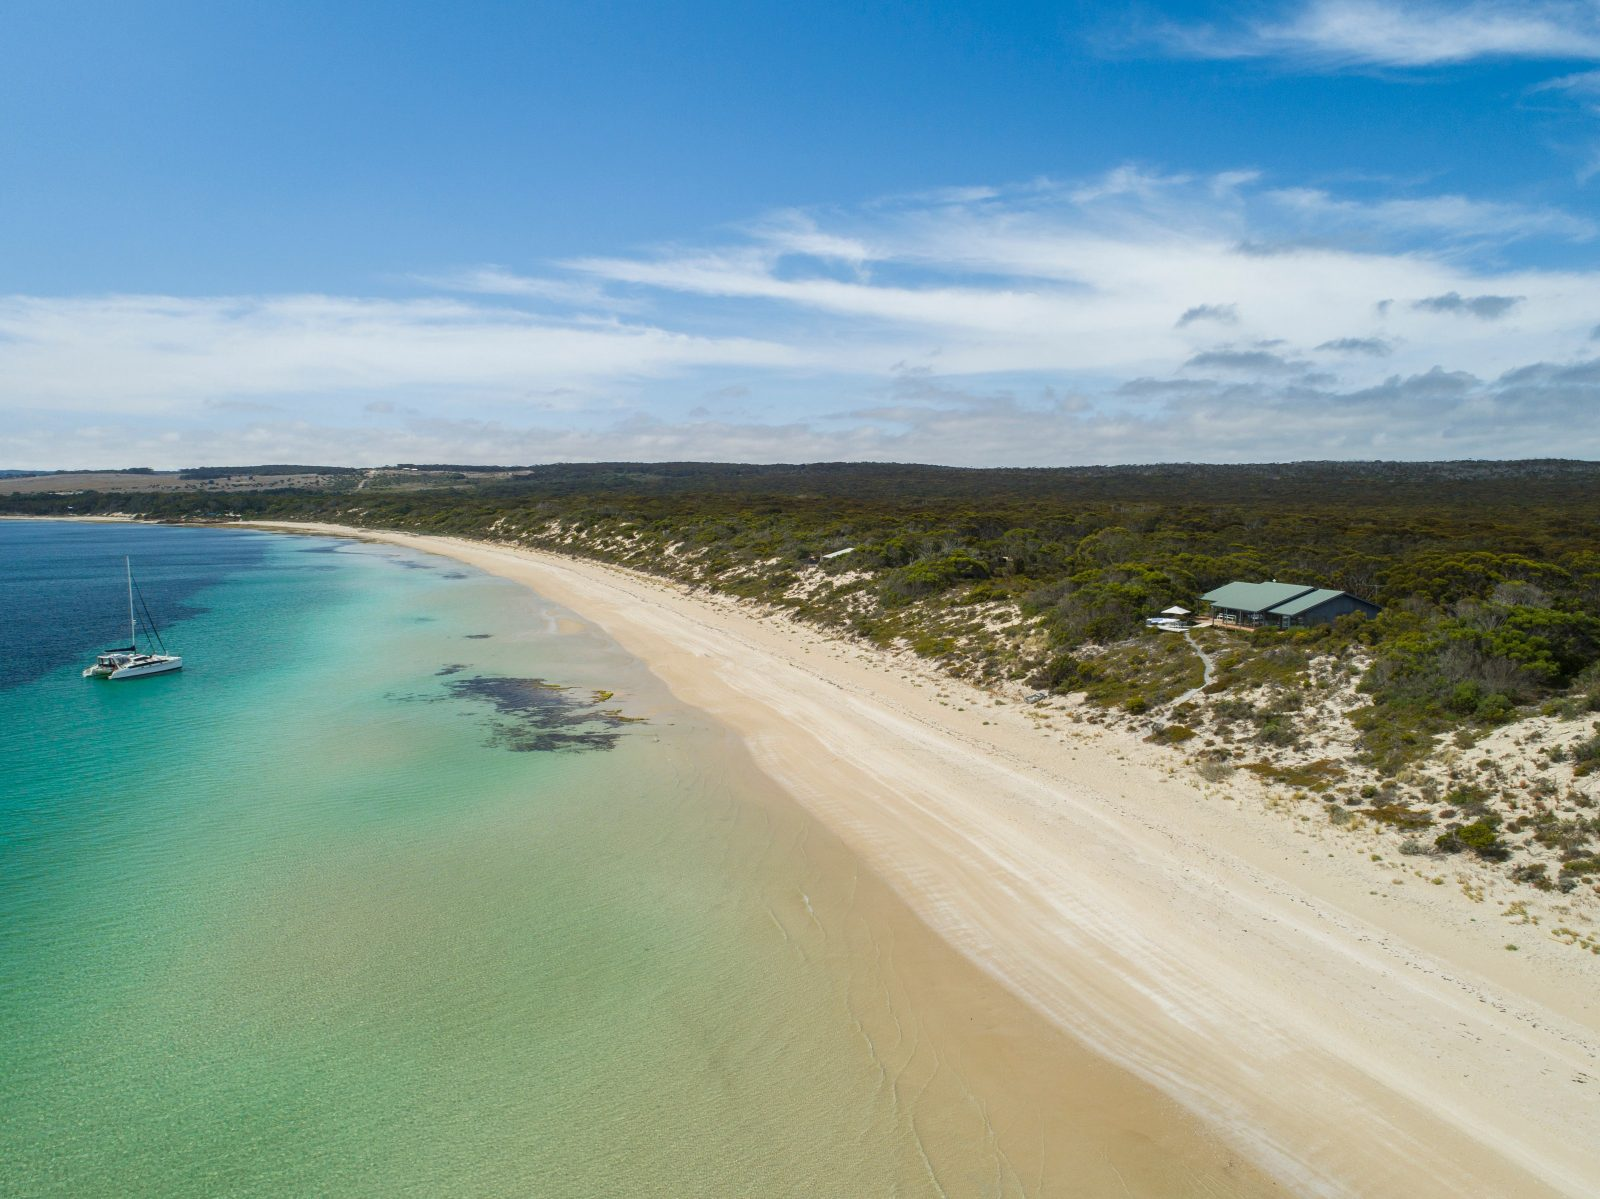 Dine Walcowrie aerial photograph from beach to bushland